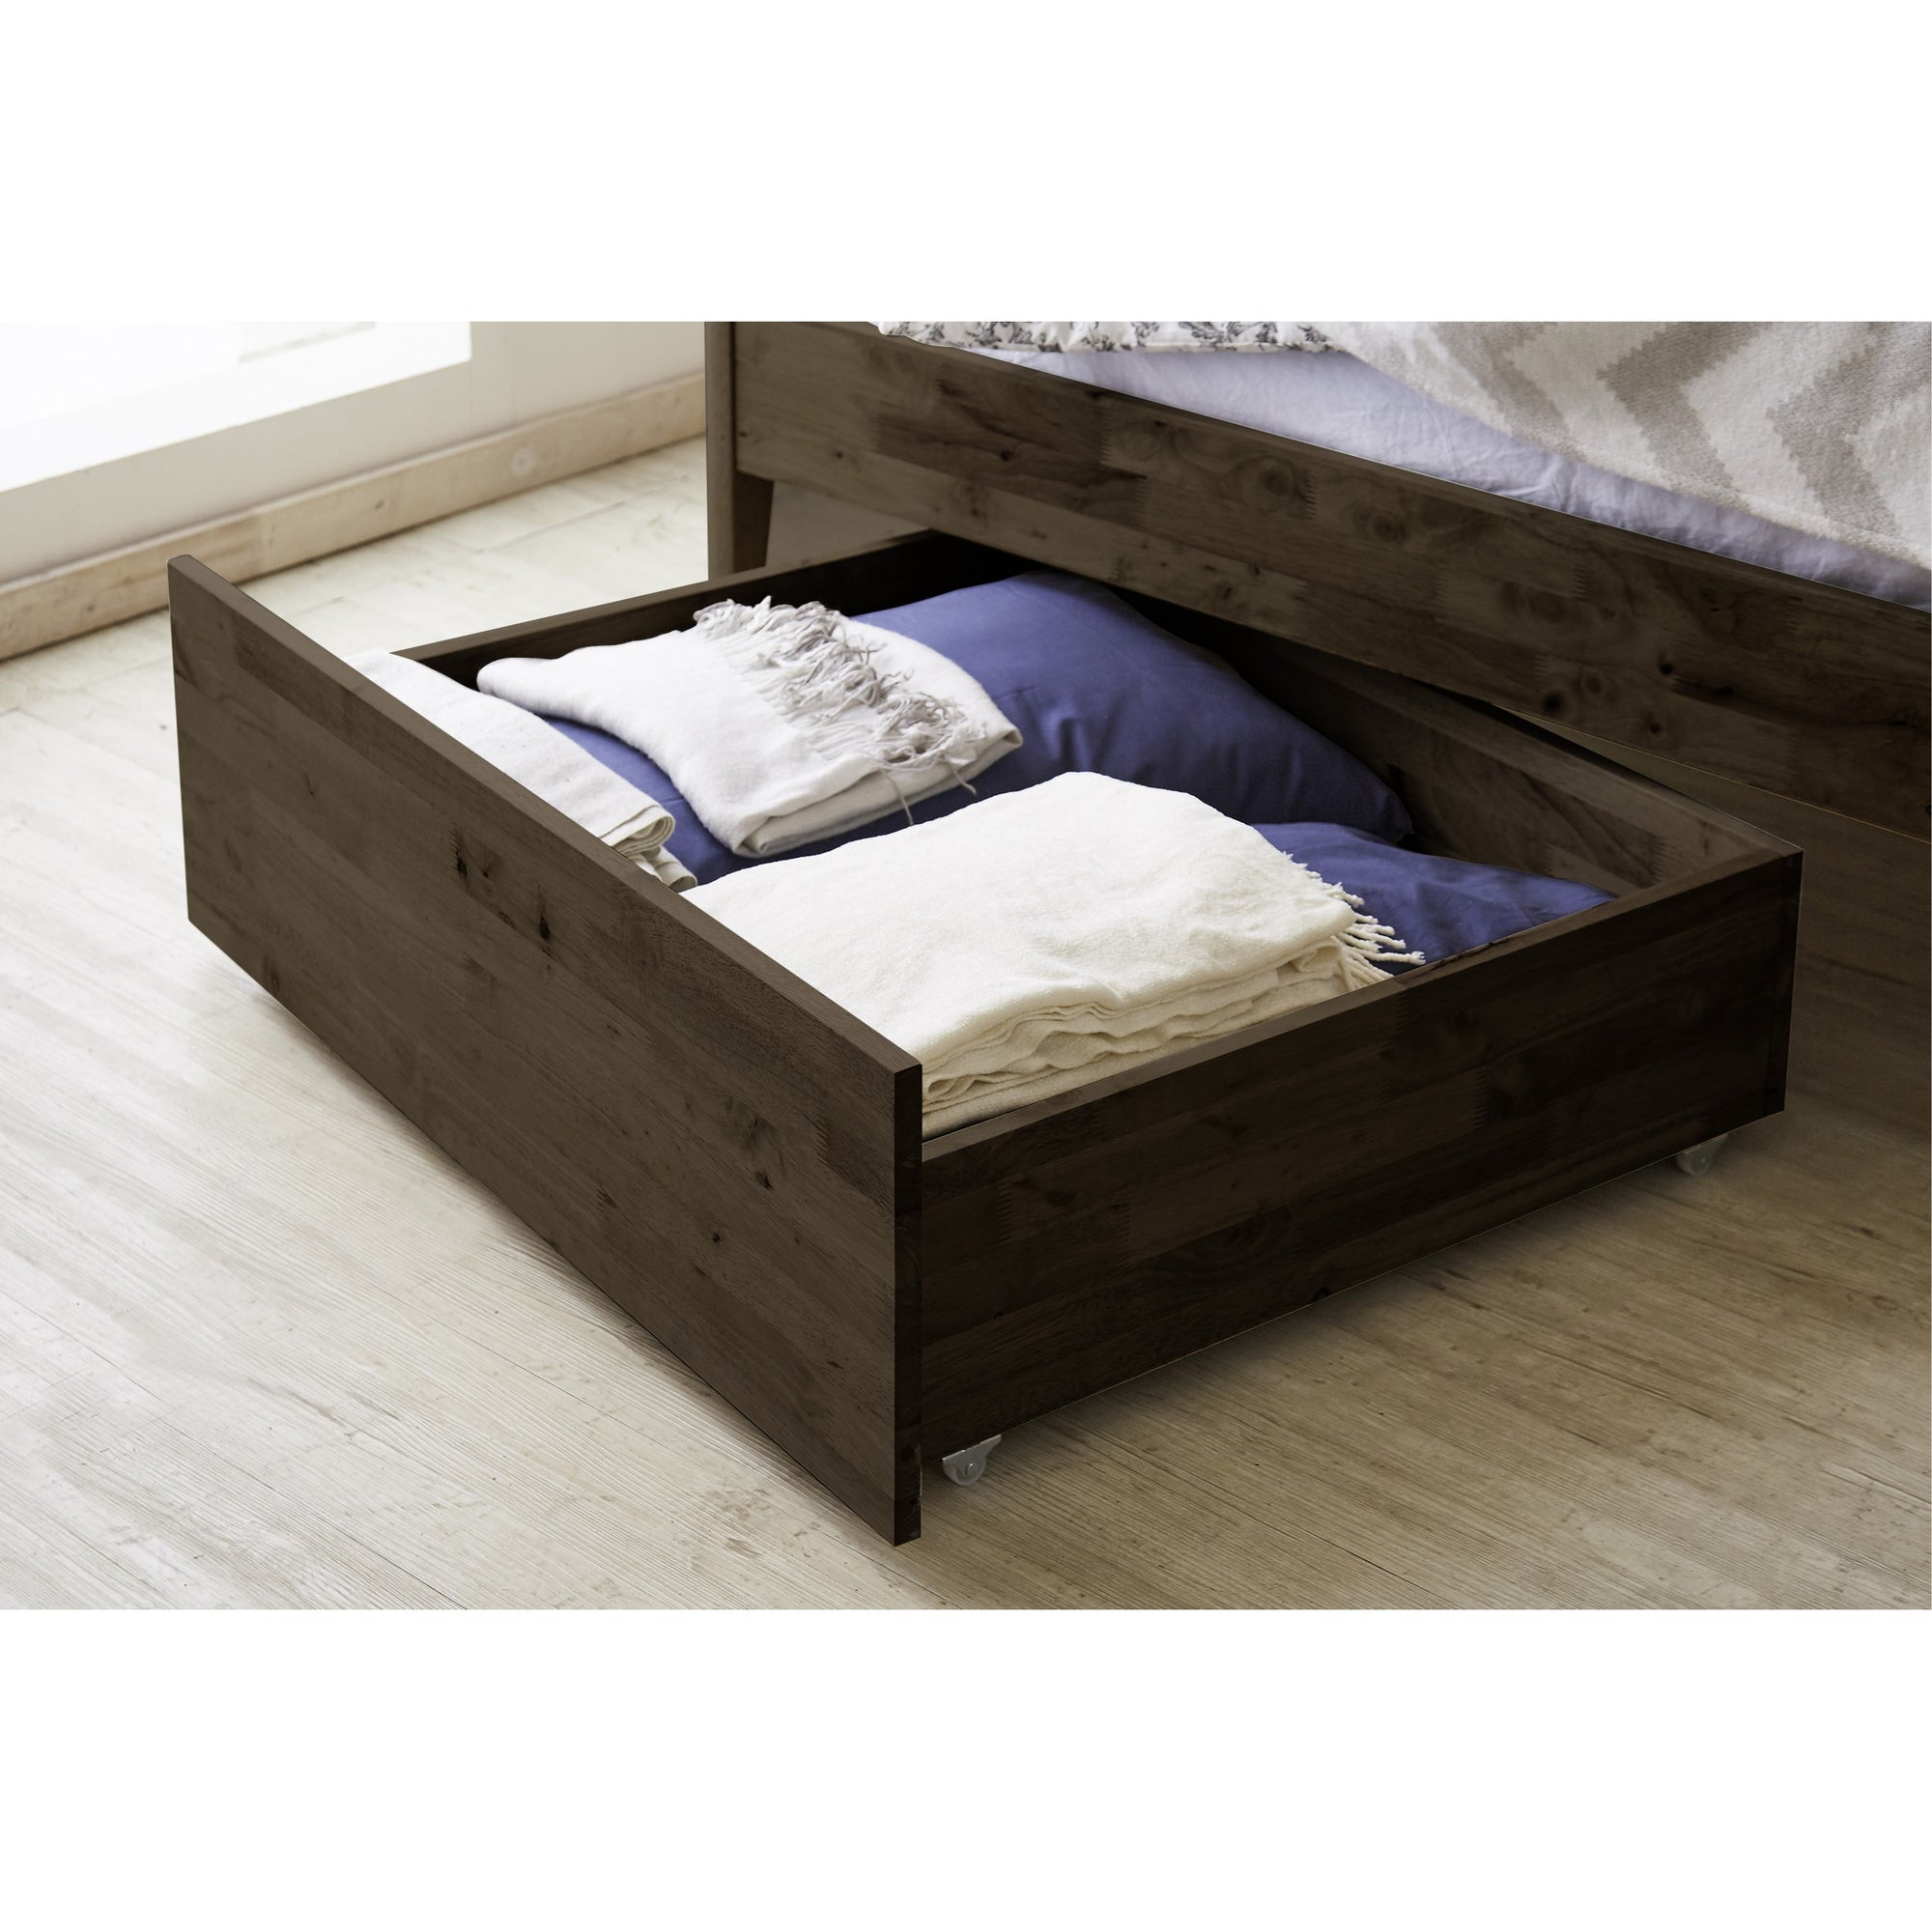 AMERICANA II Under Bed Movable Solid Wood Storage Drawer Trundle (WIL-7106)